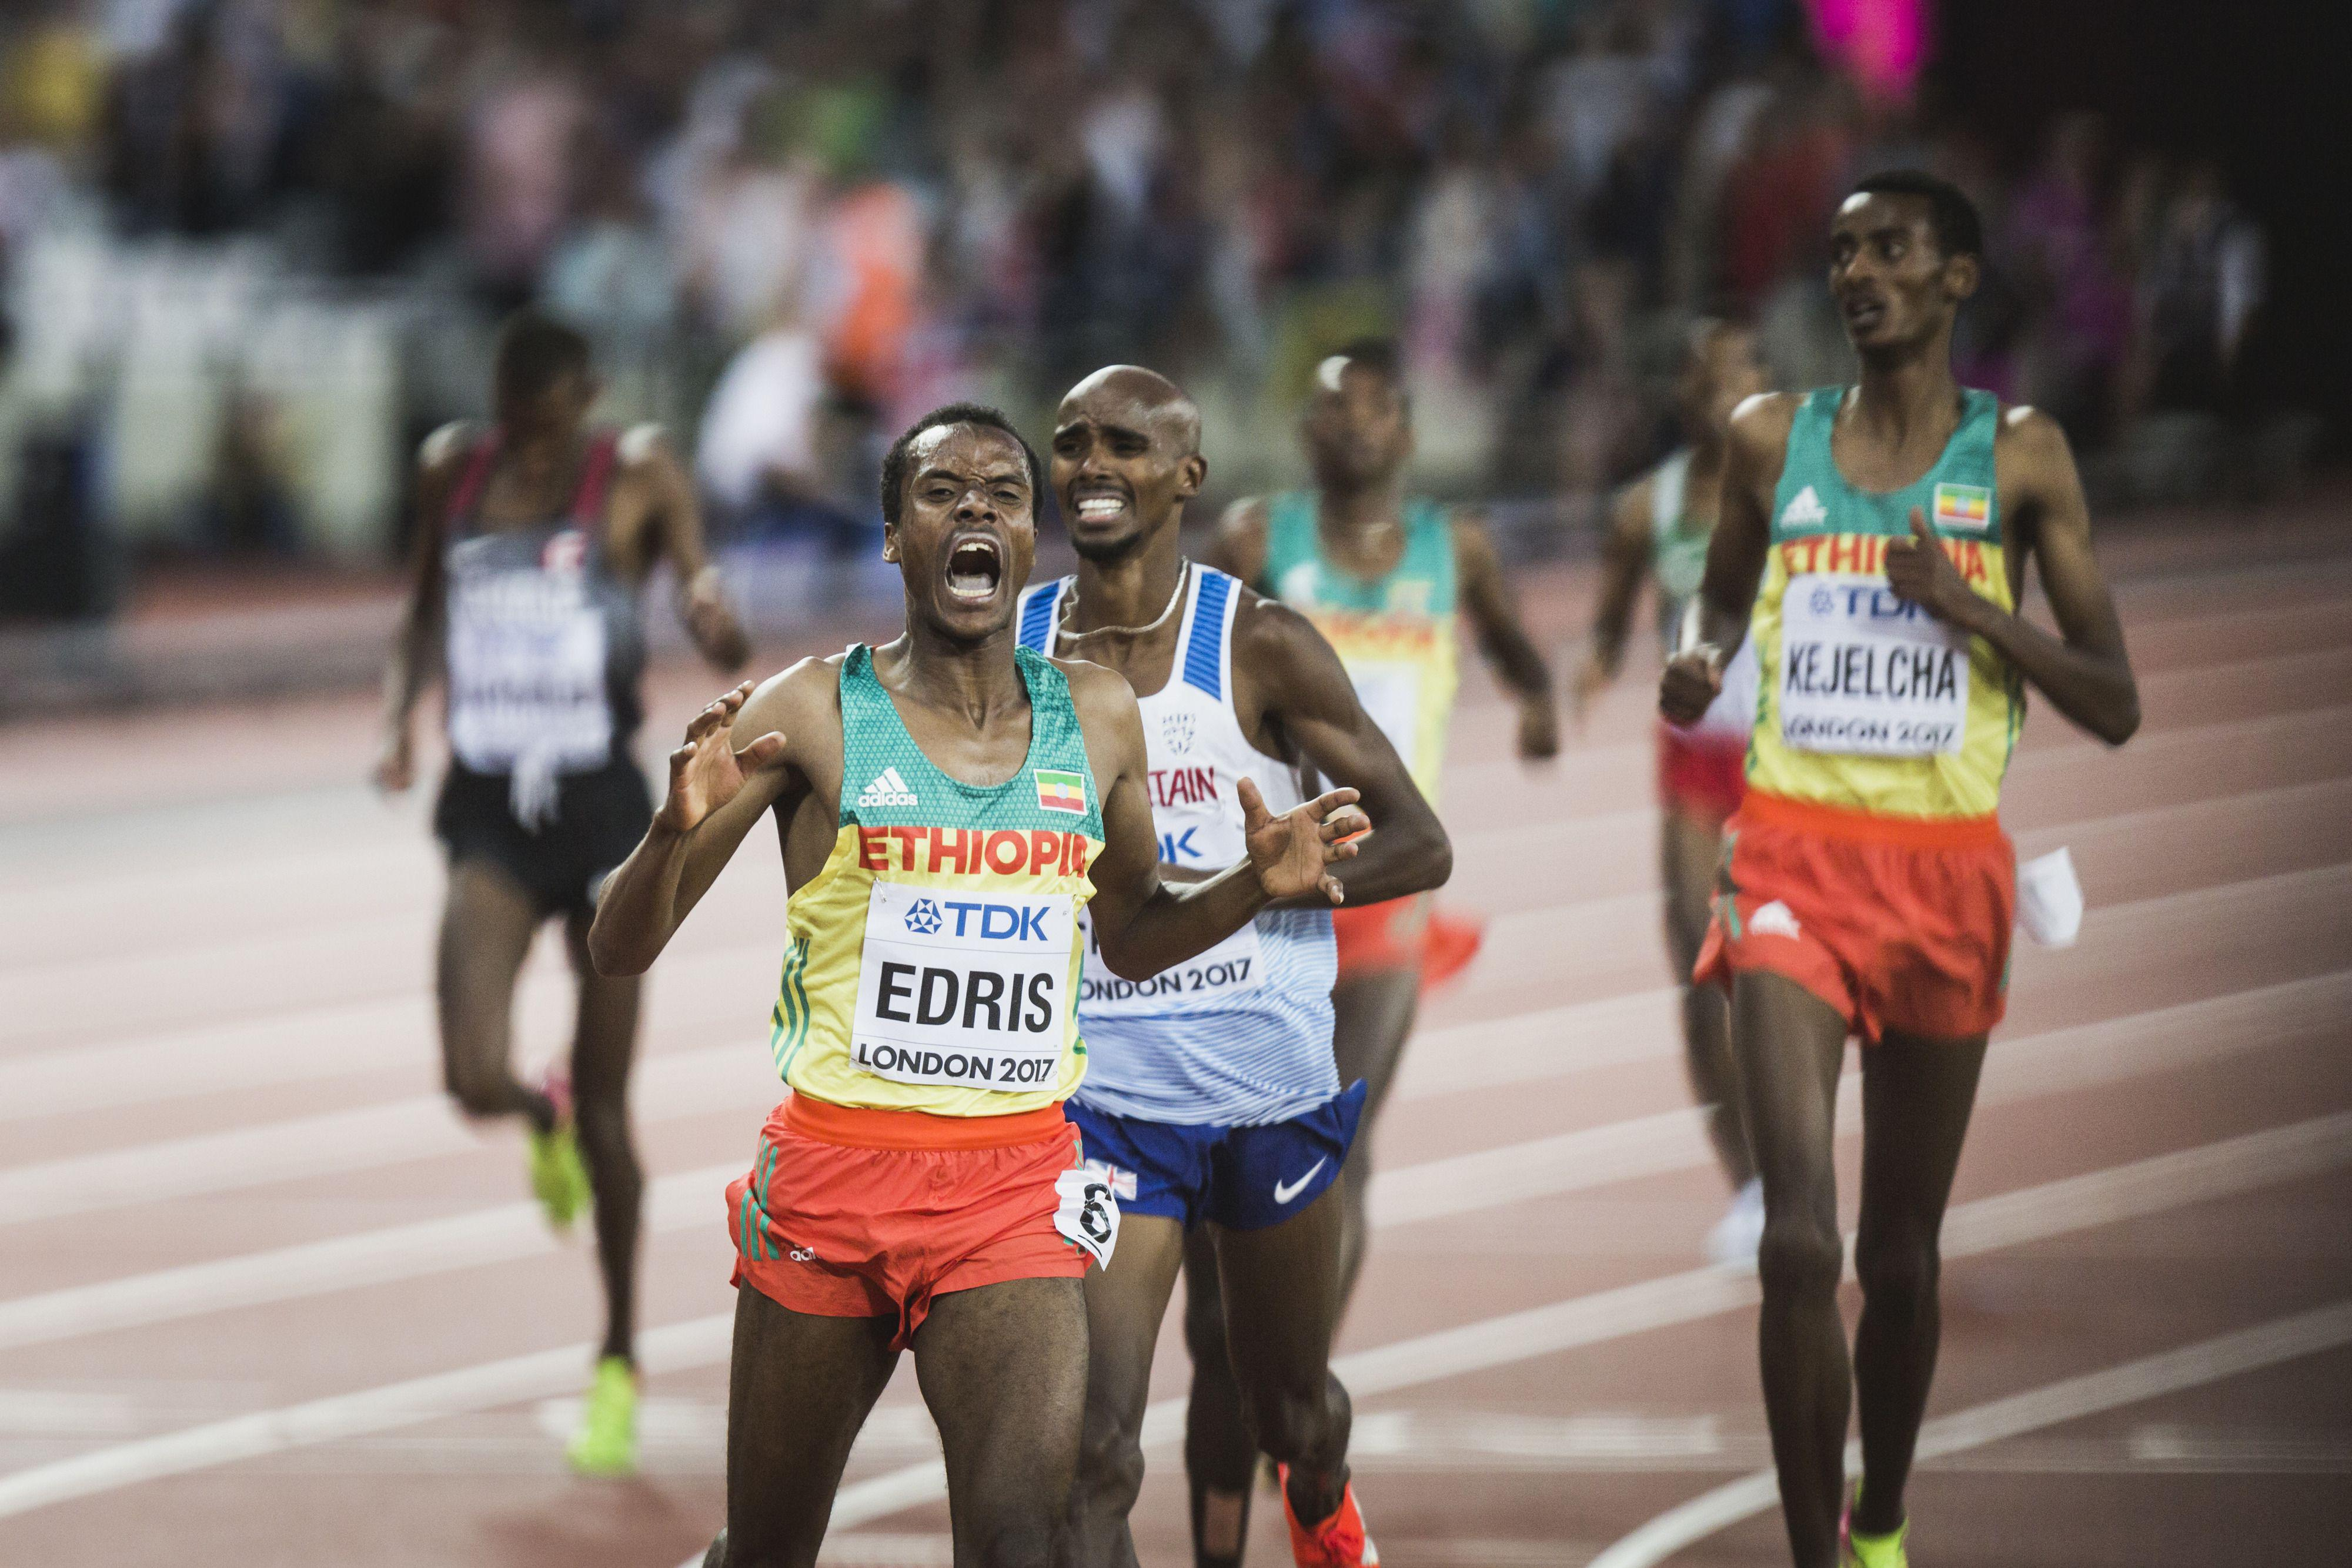 Mo Farah finished his track career with a silver medal in the 5,000m after being defeated by Ethiopian in Muktar Edris